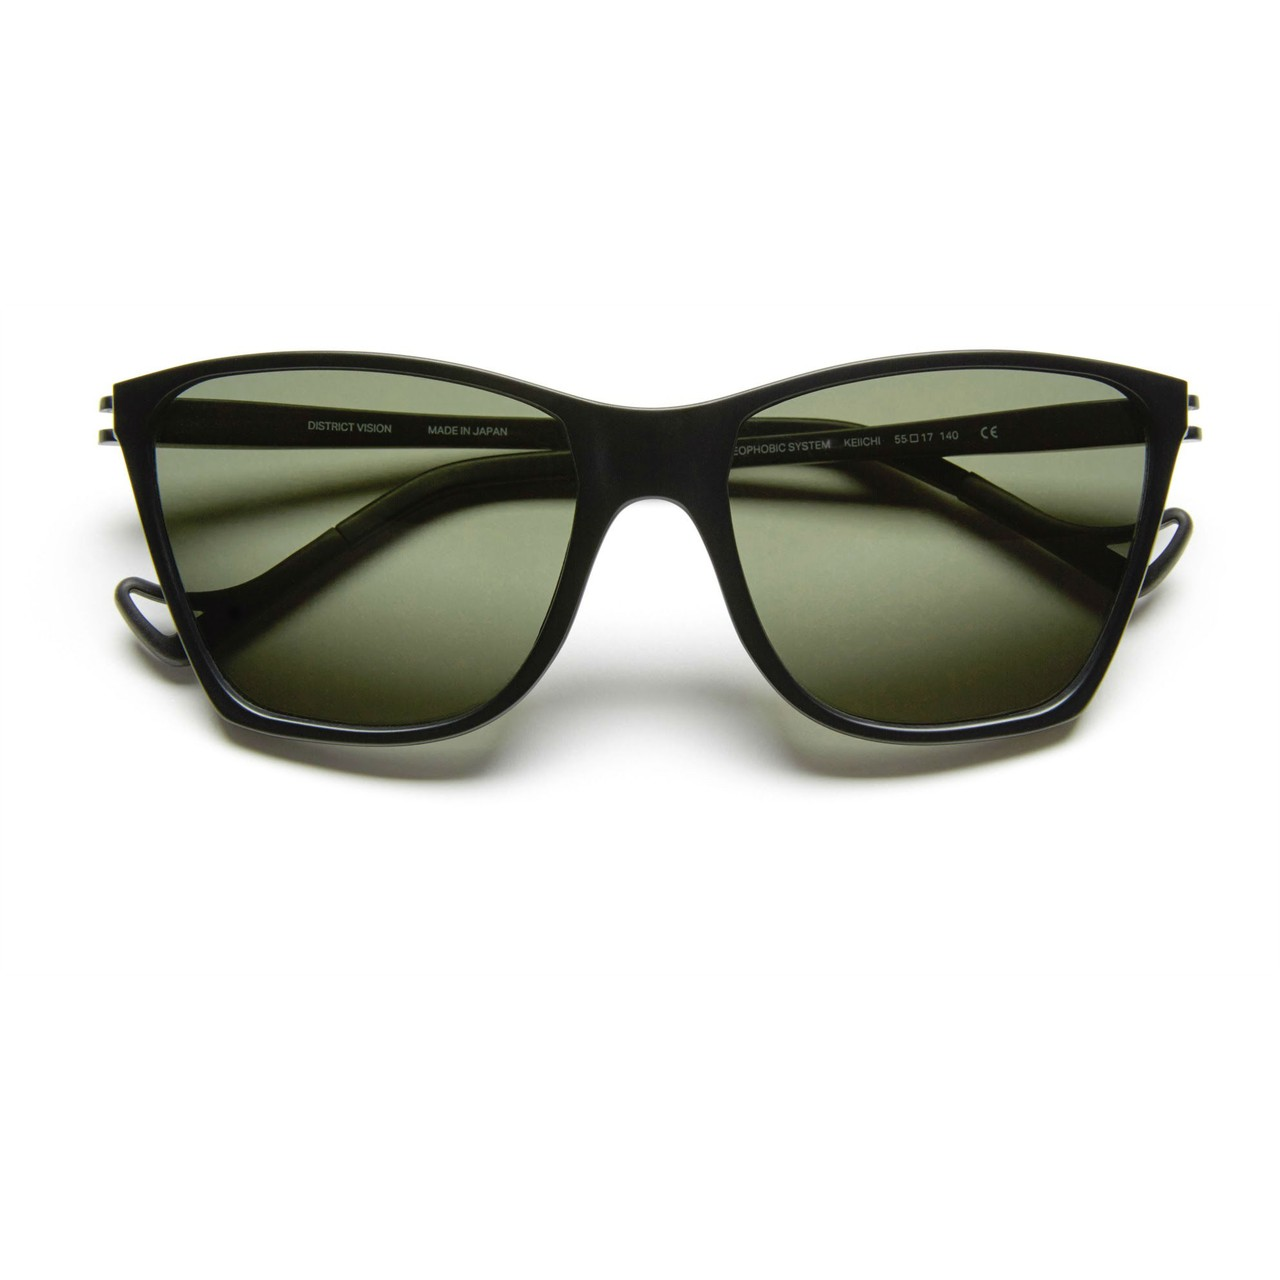 District Vision Keiichi Running Sunglasses in Black